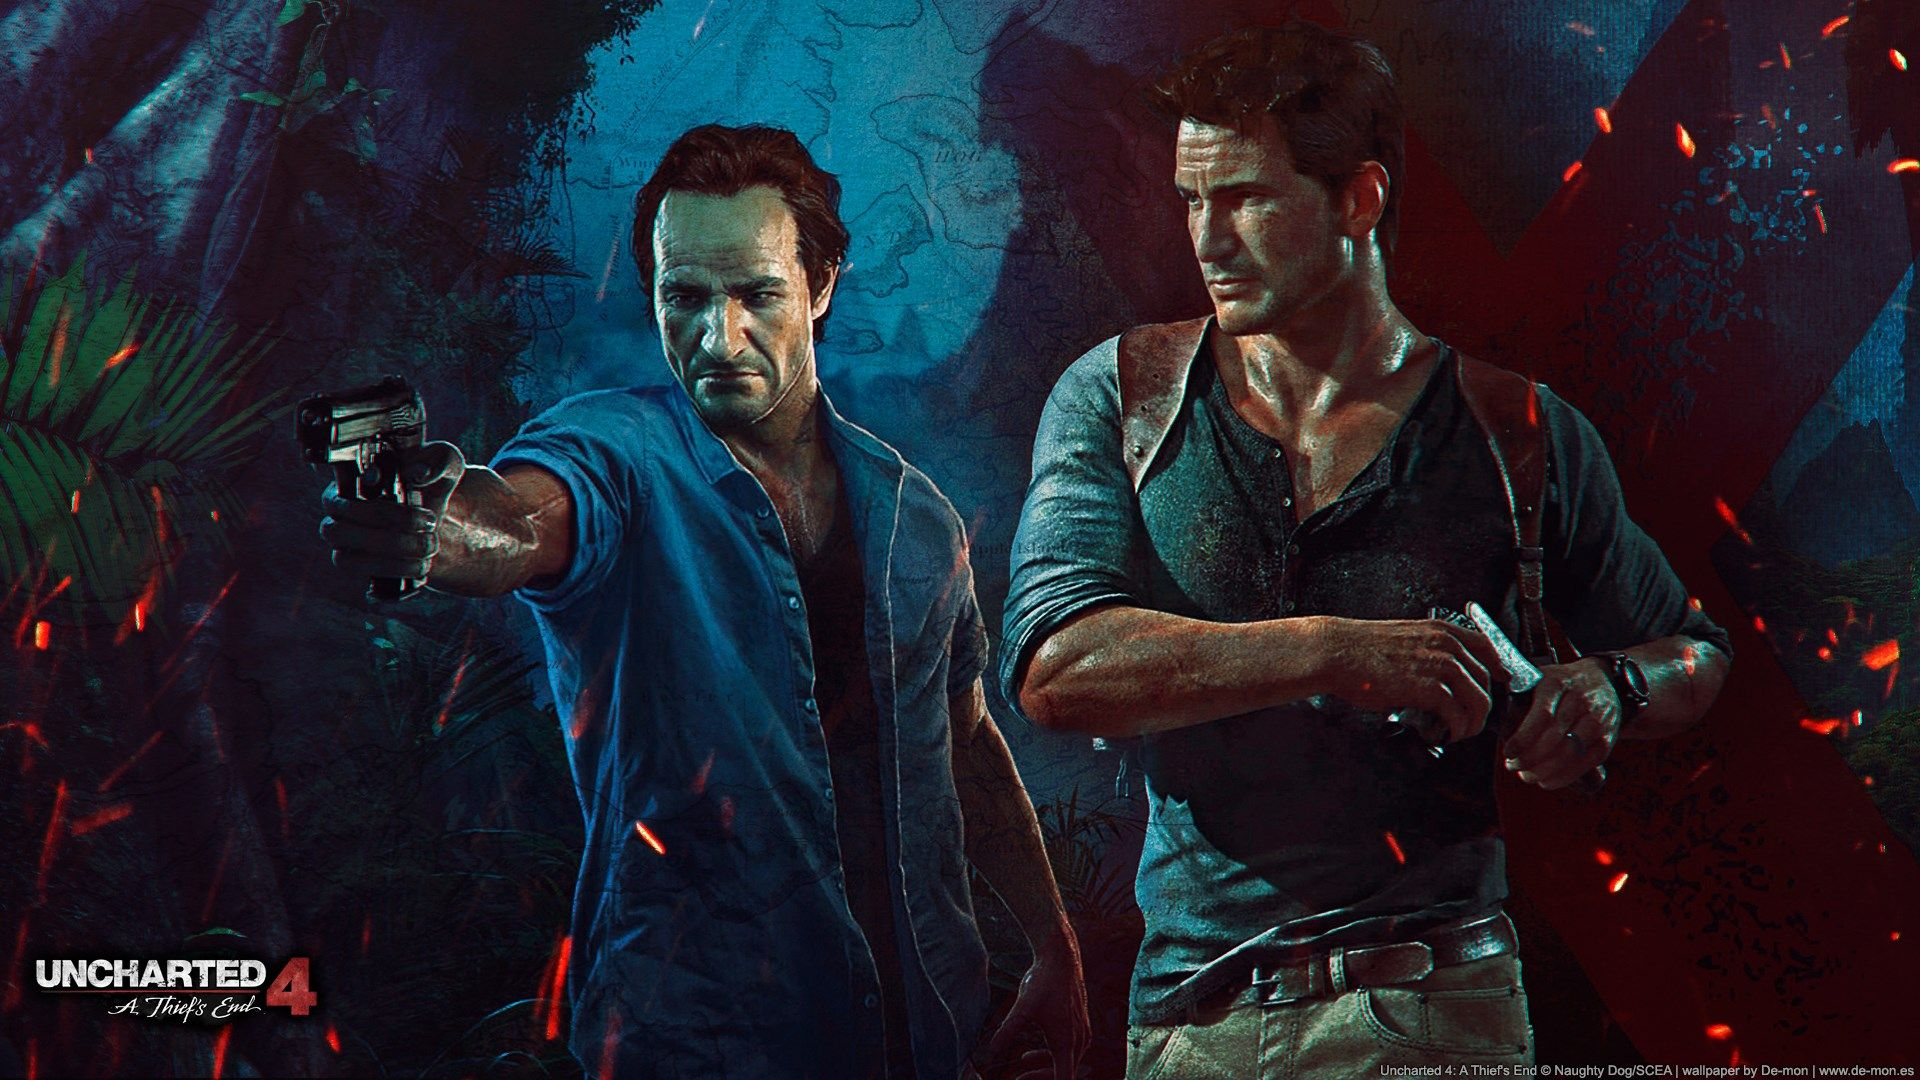 Backgrounds In High Quality Uncharted 4 A Thiefs End Wallpaper